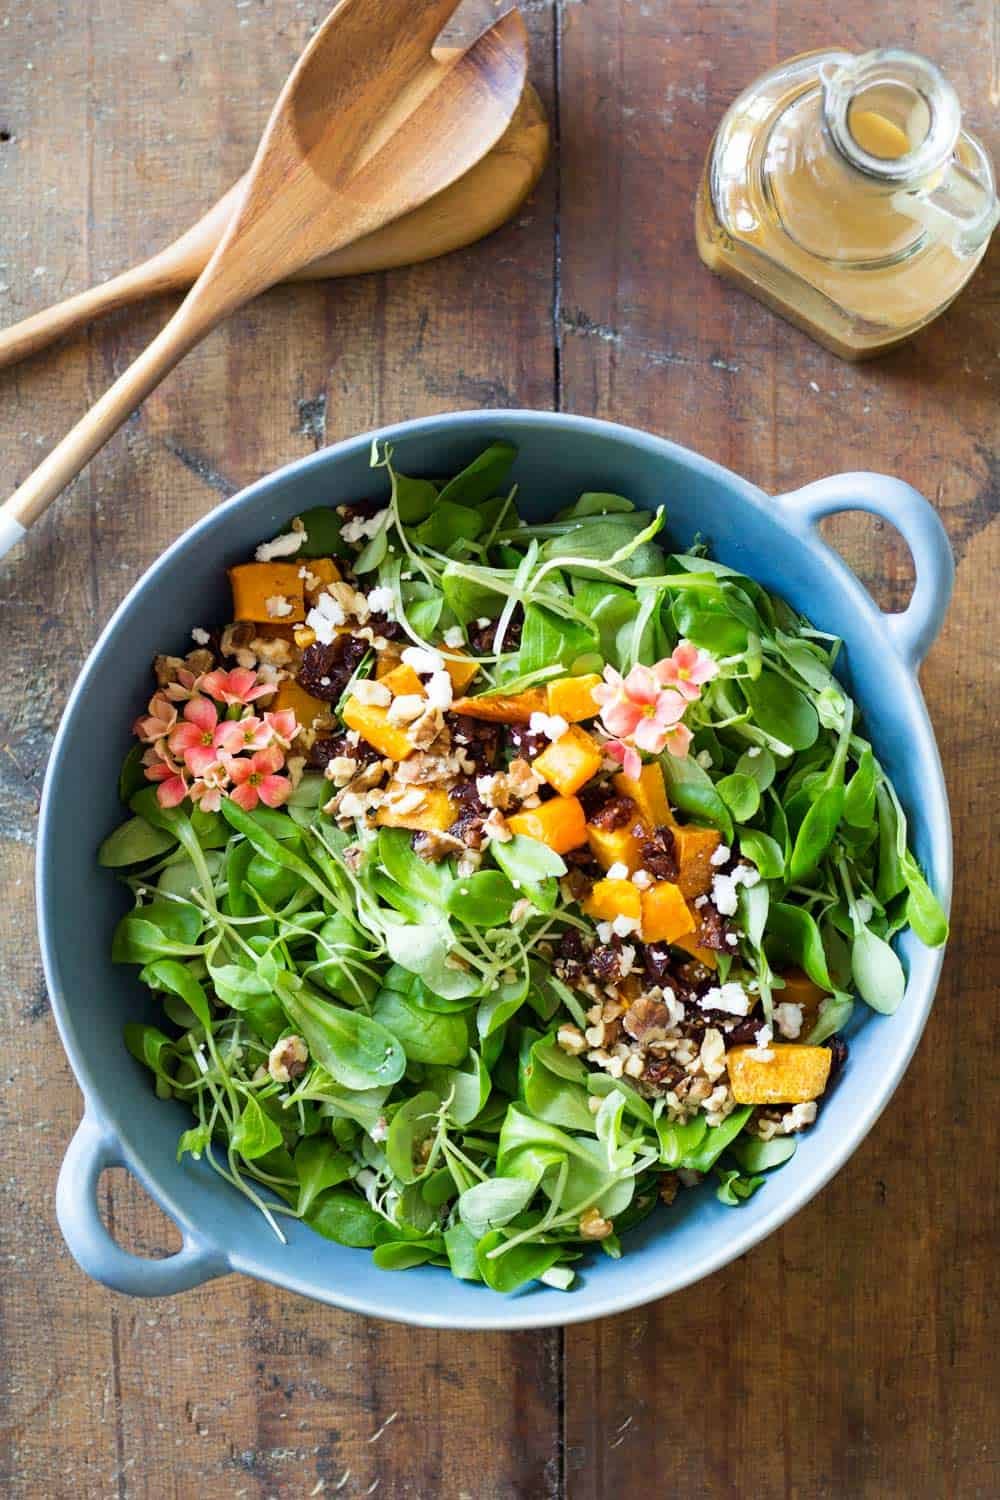 Roasted Butternut Squash Salad, the very best fall salad. Warm butternut squash, dried cranberries, crisp walnuts, soft goat cheese & silky lamb's lettuce.